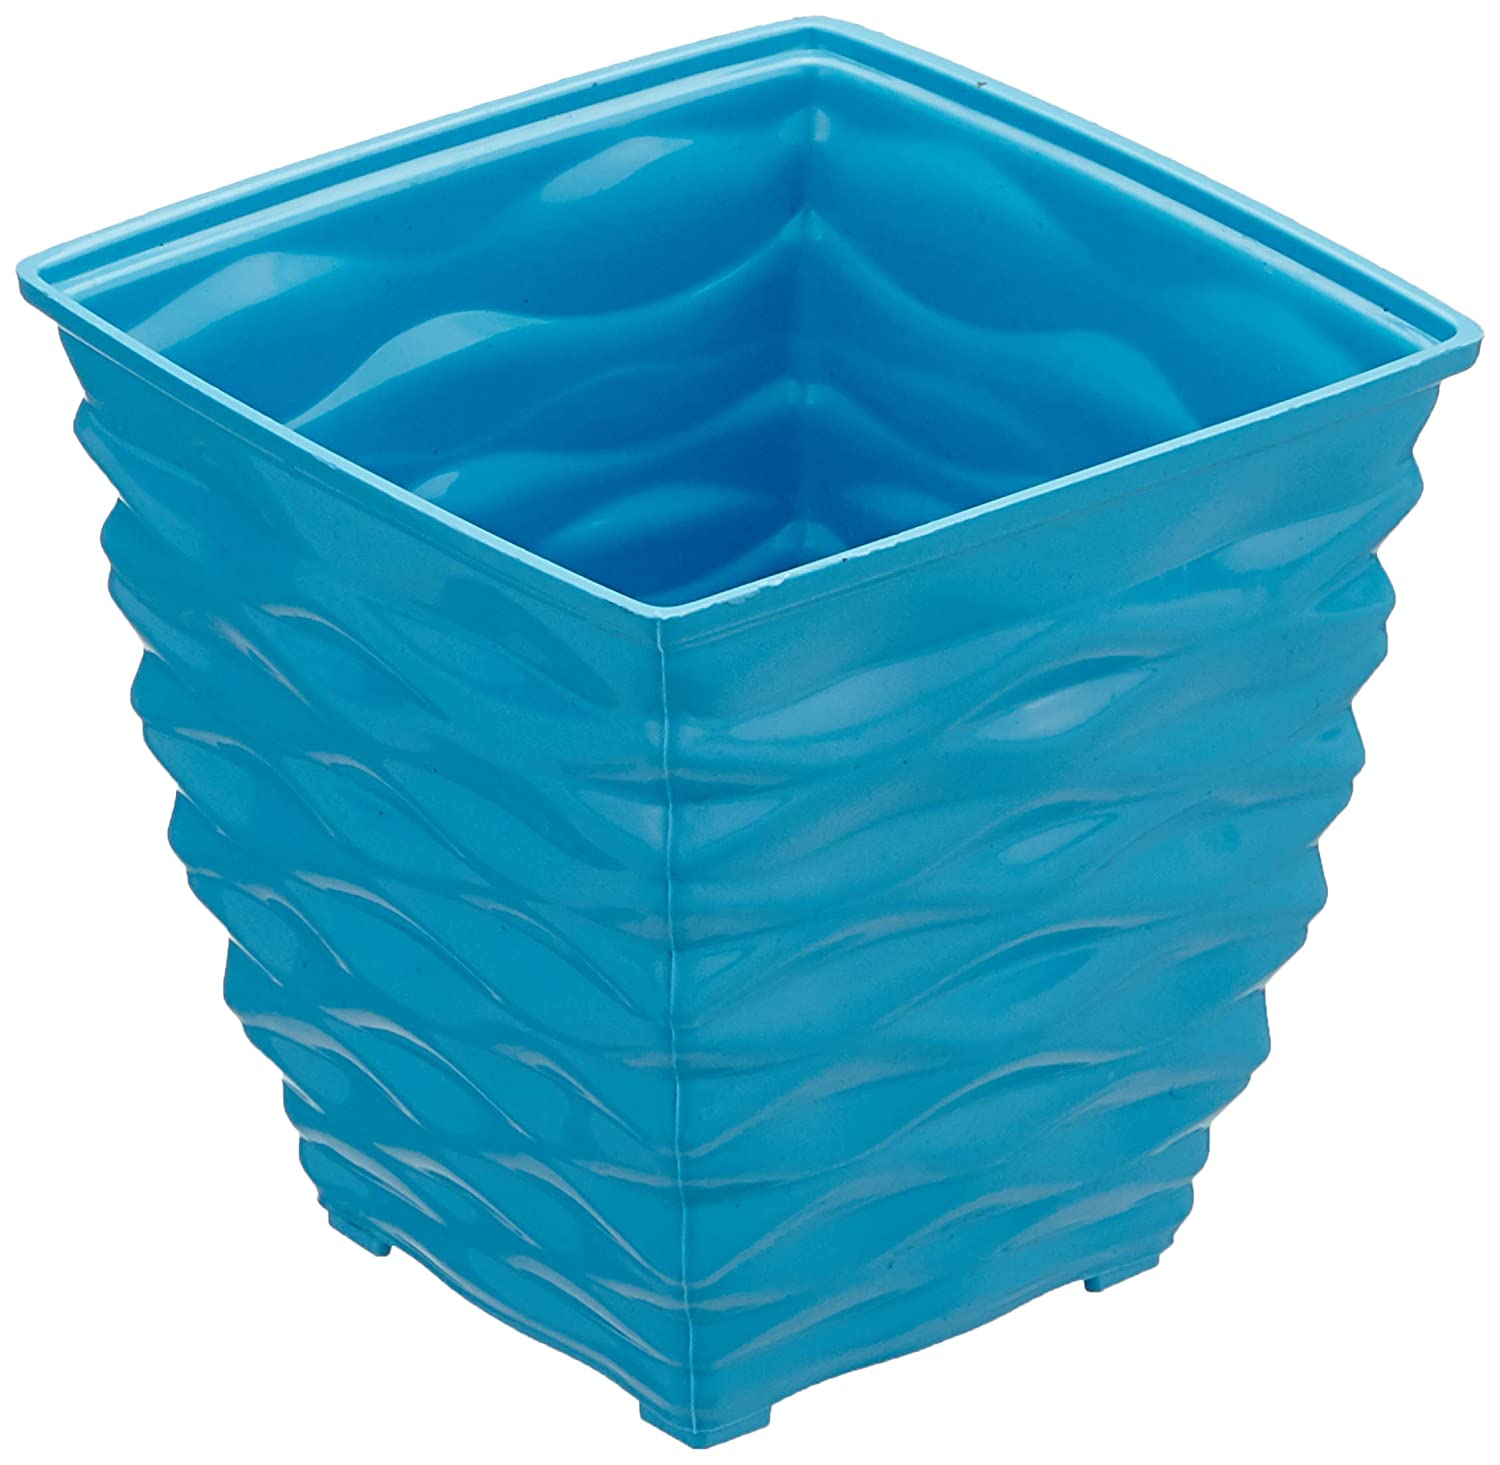 Plastic Square Planter Set (Small, Blue, Pack of 6)